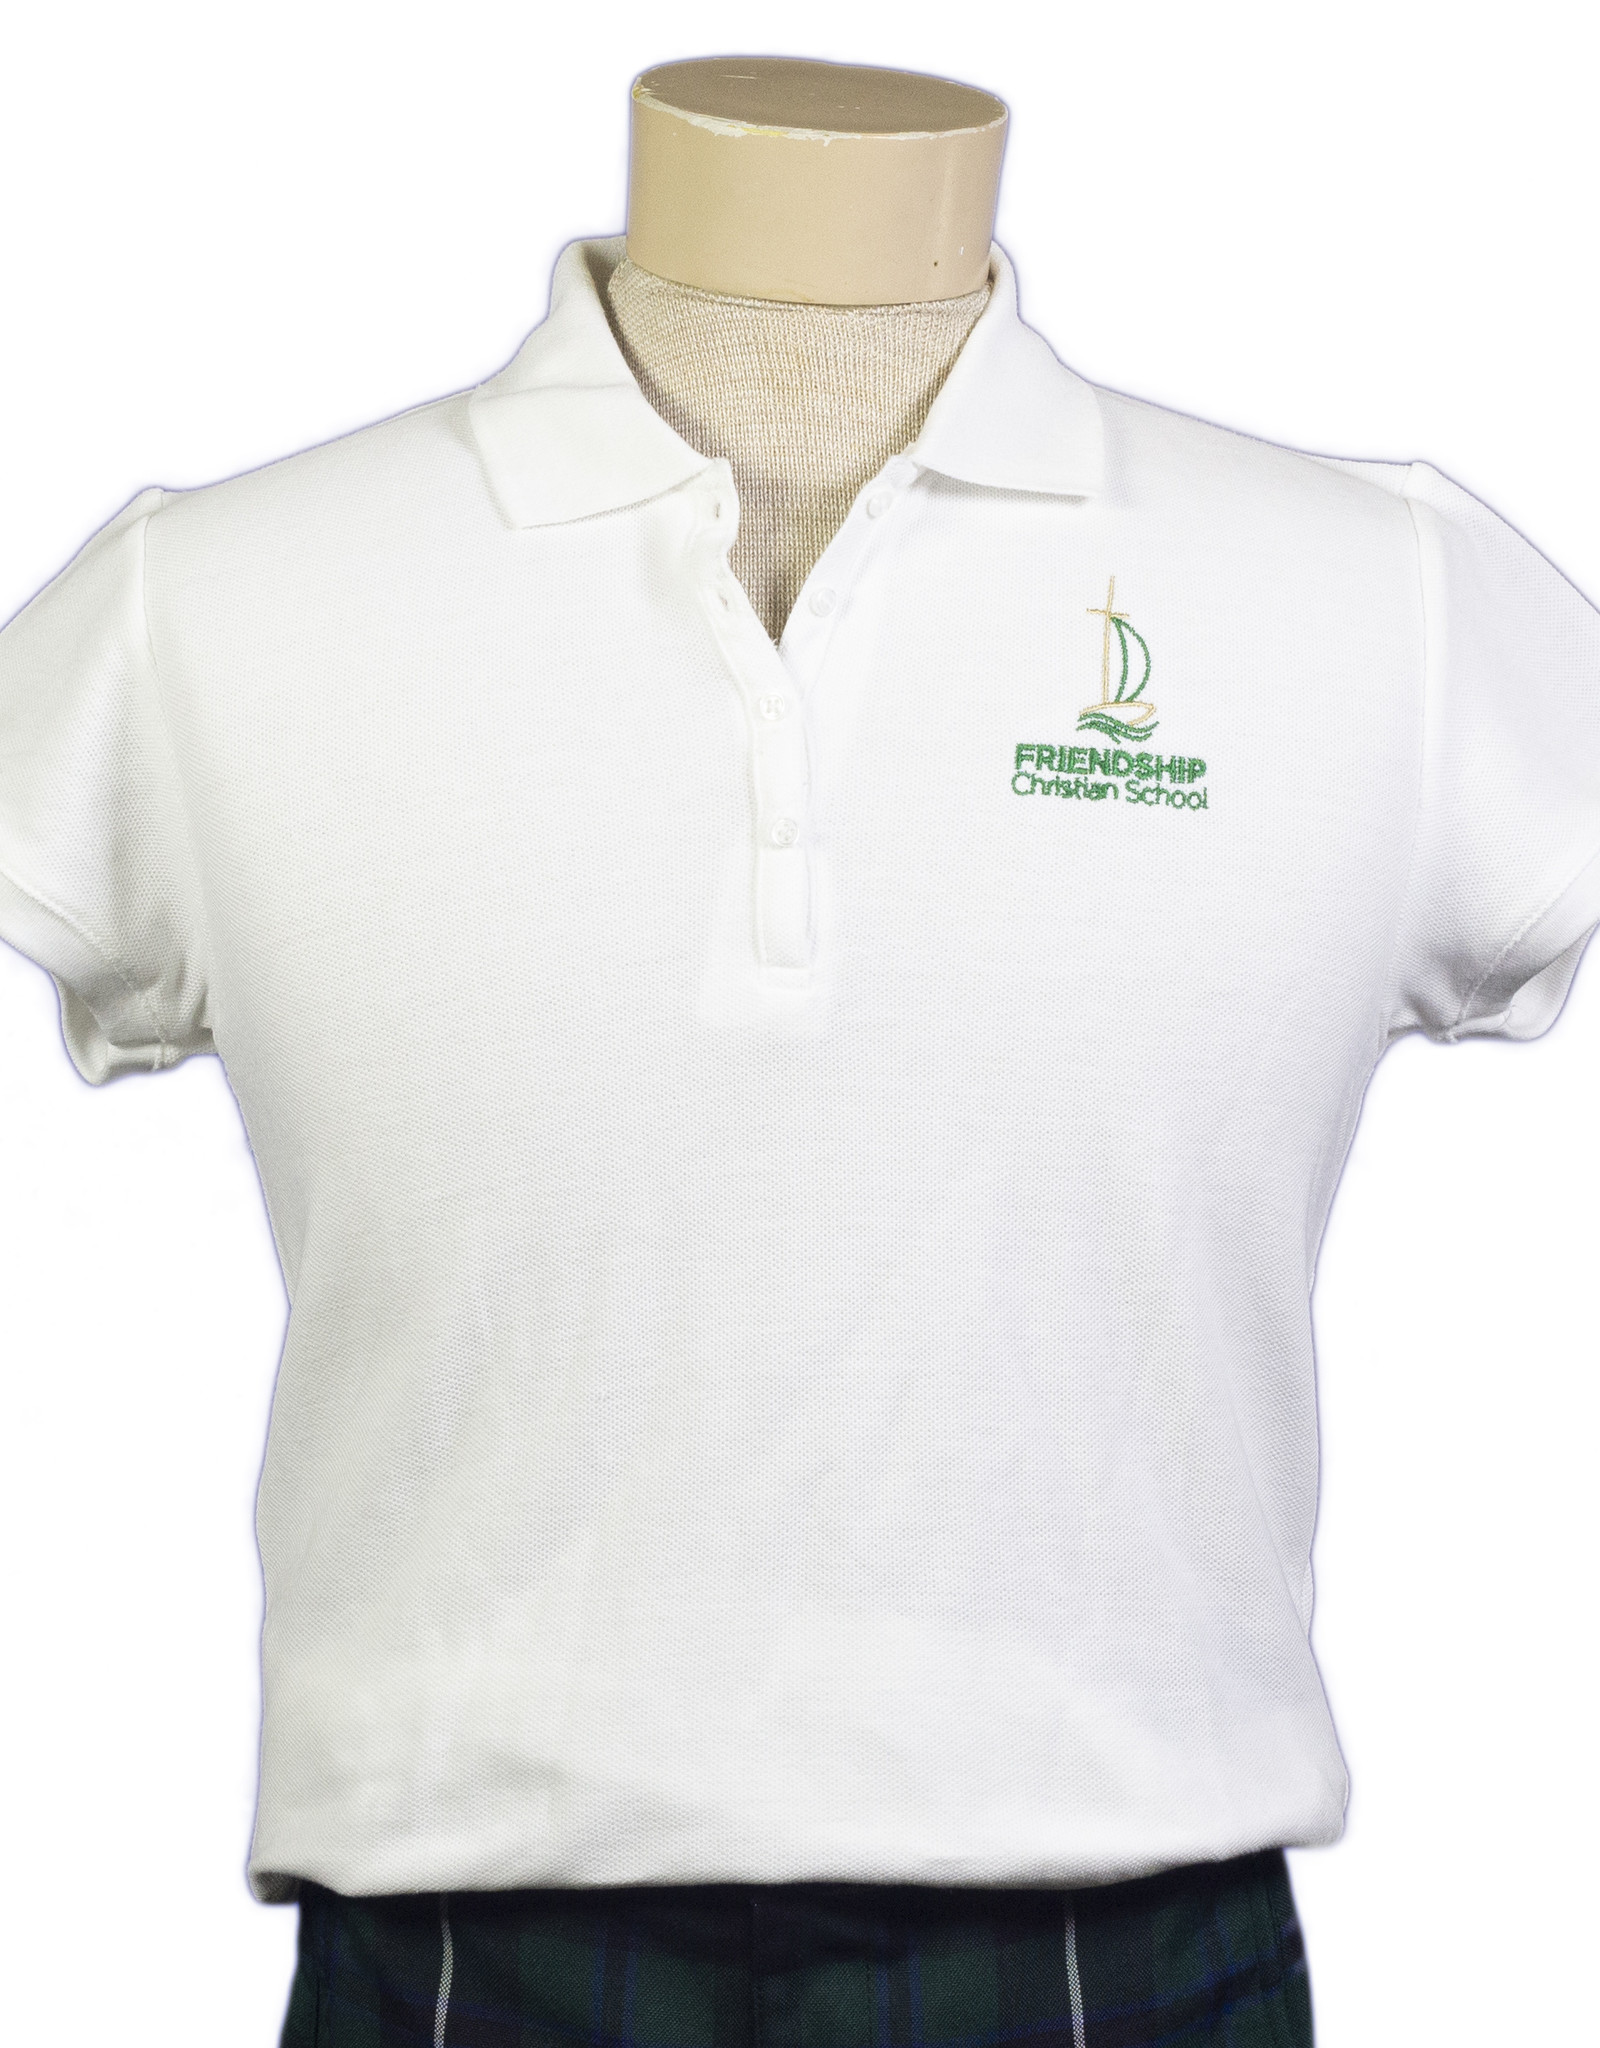 Girls short-sleeve polo (9715) with FCS logo